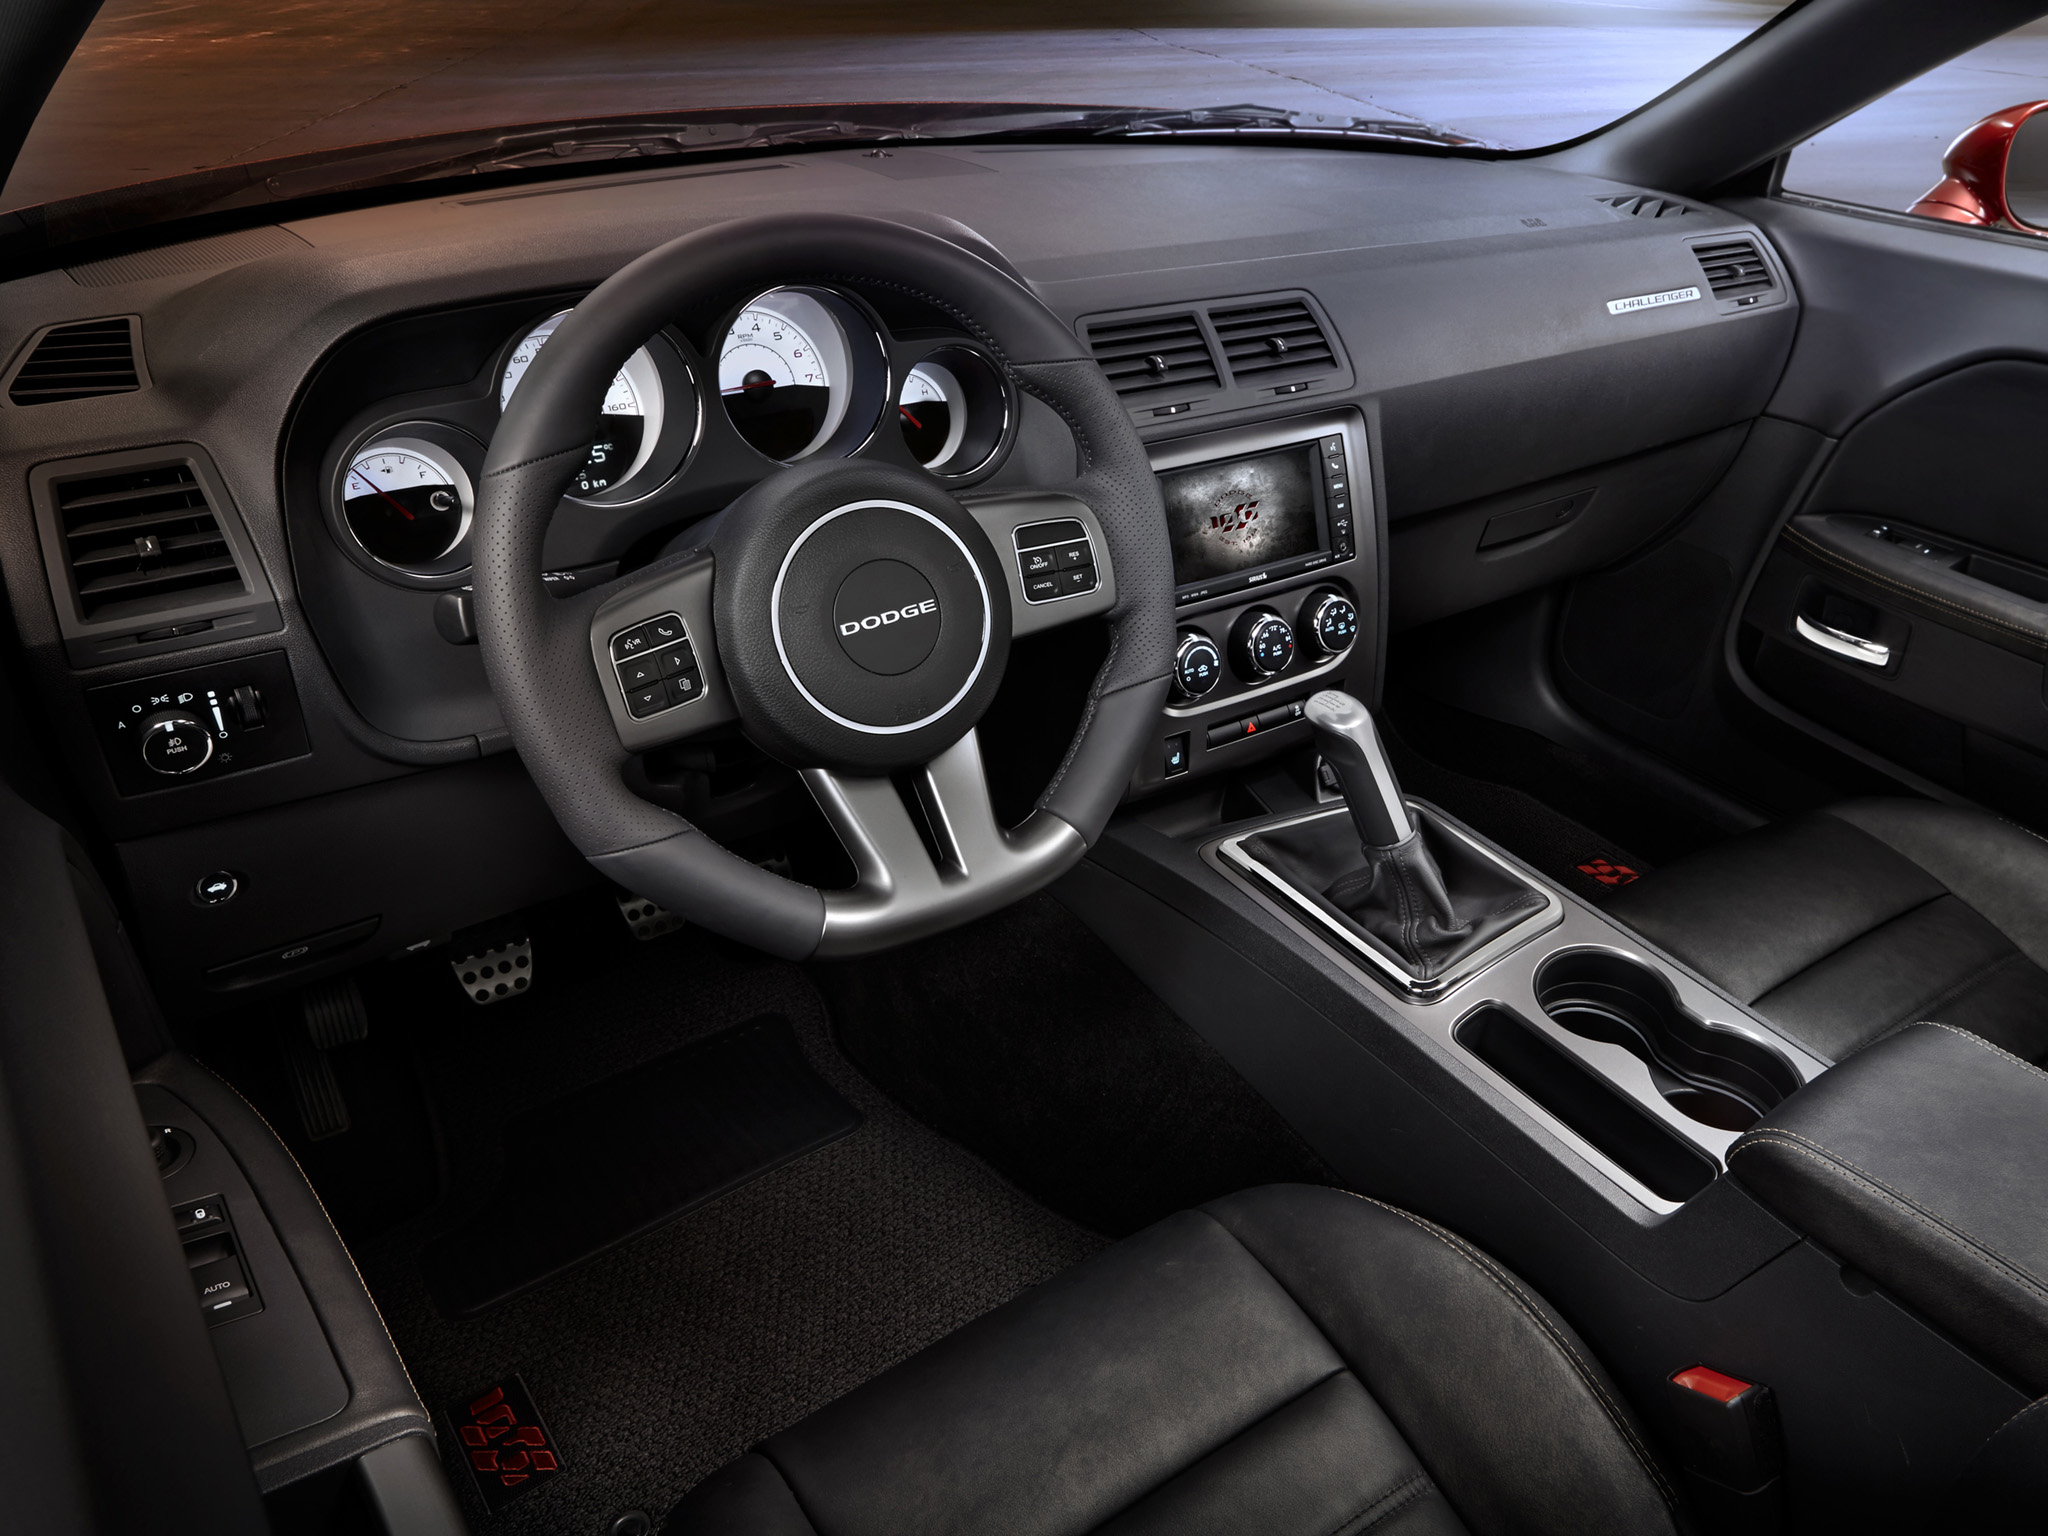 2014 dodge challenger rt muscle r t interior h wallpaper 2048x1536 178216 wallpaperup. Black Bedroom Furniture Sets. Home Design Ideas